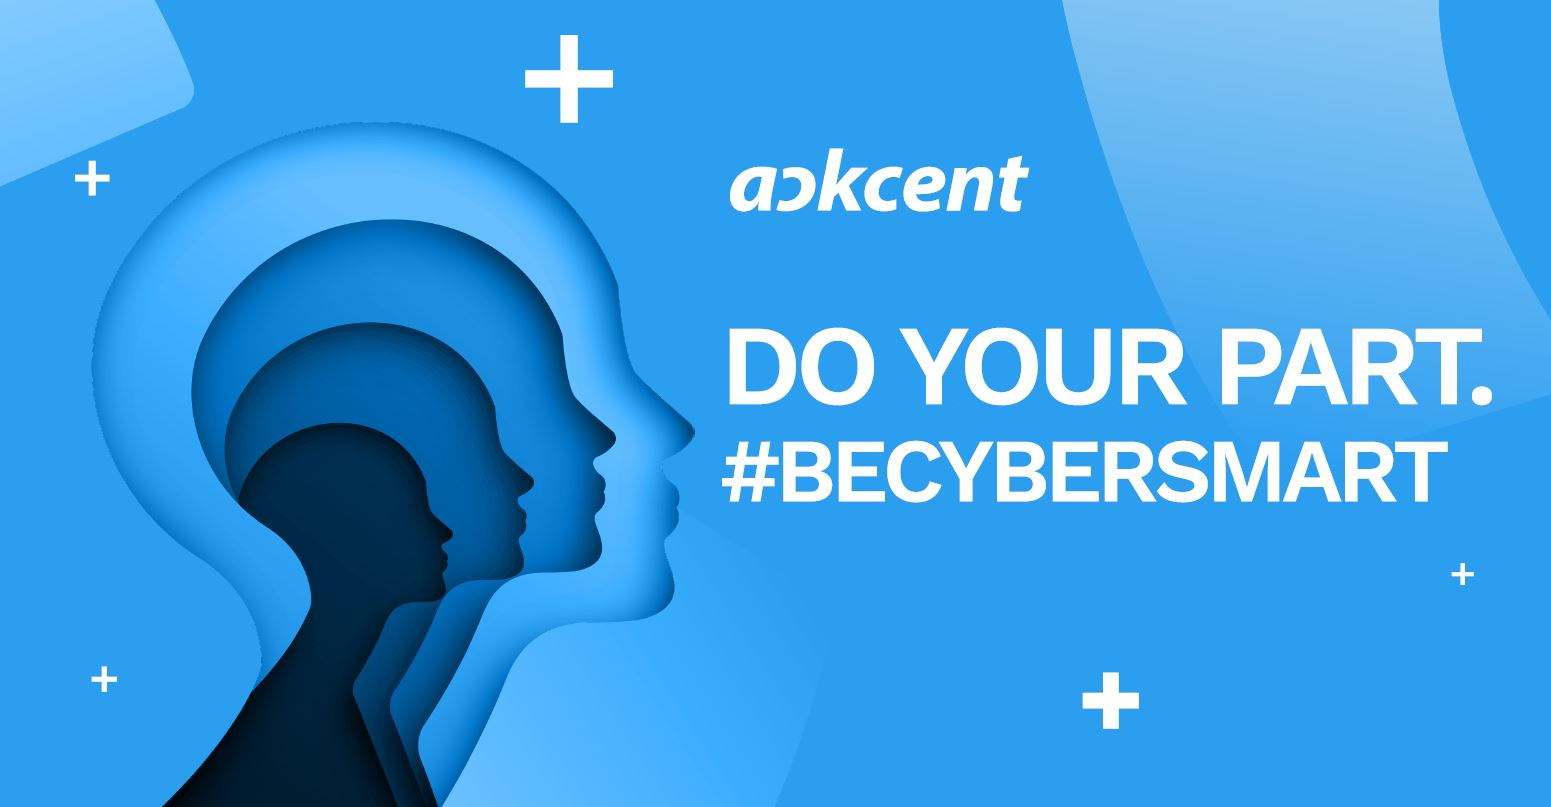 Ackcent joins Cybersecurity Awareness Month